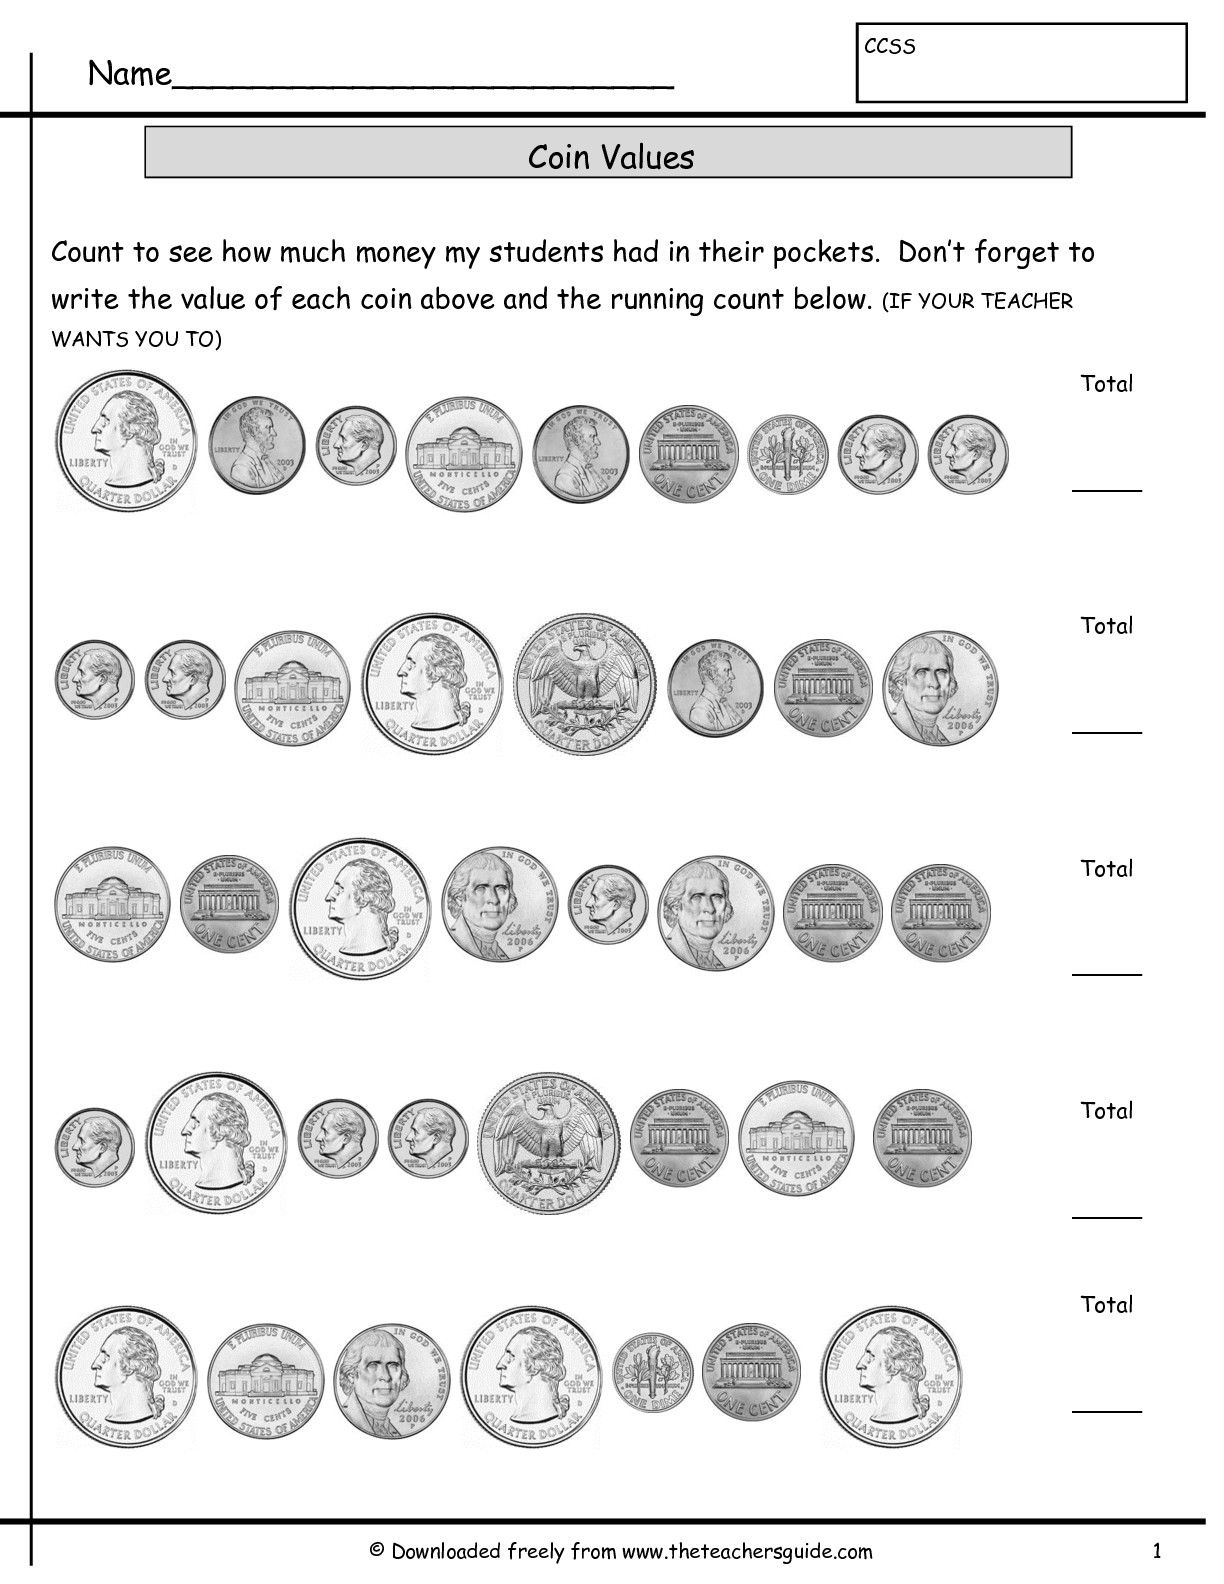 medium resolution of Counting Coins Worksheets from The Teacher's Guide   Money worksheets